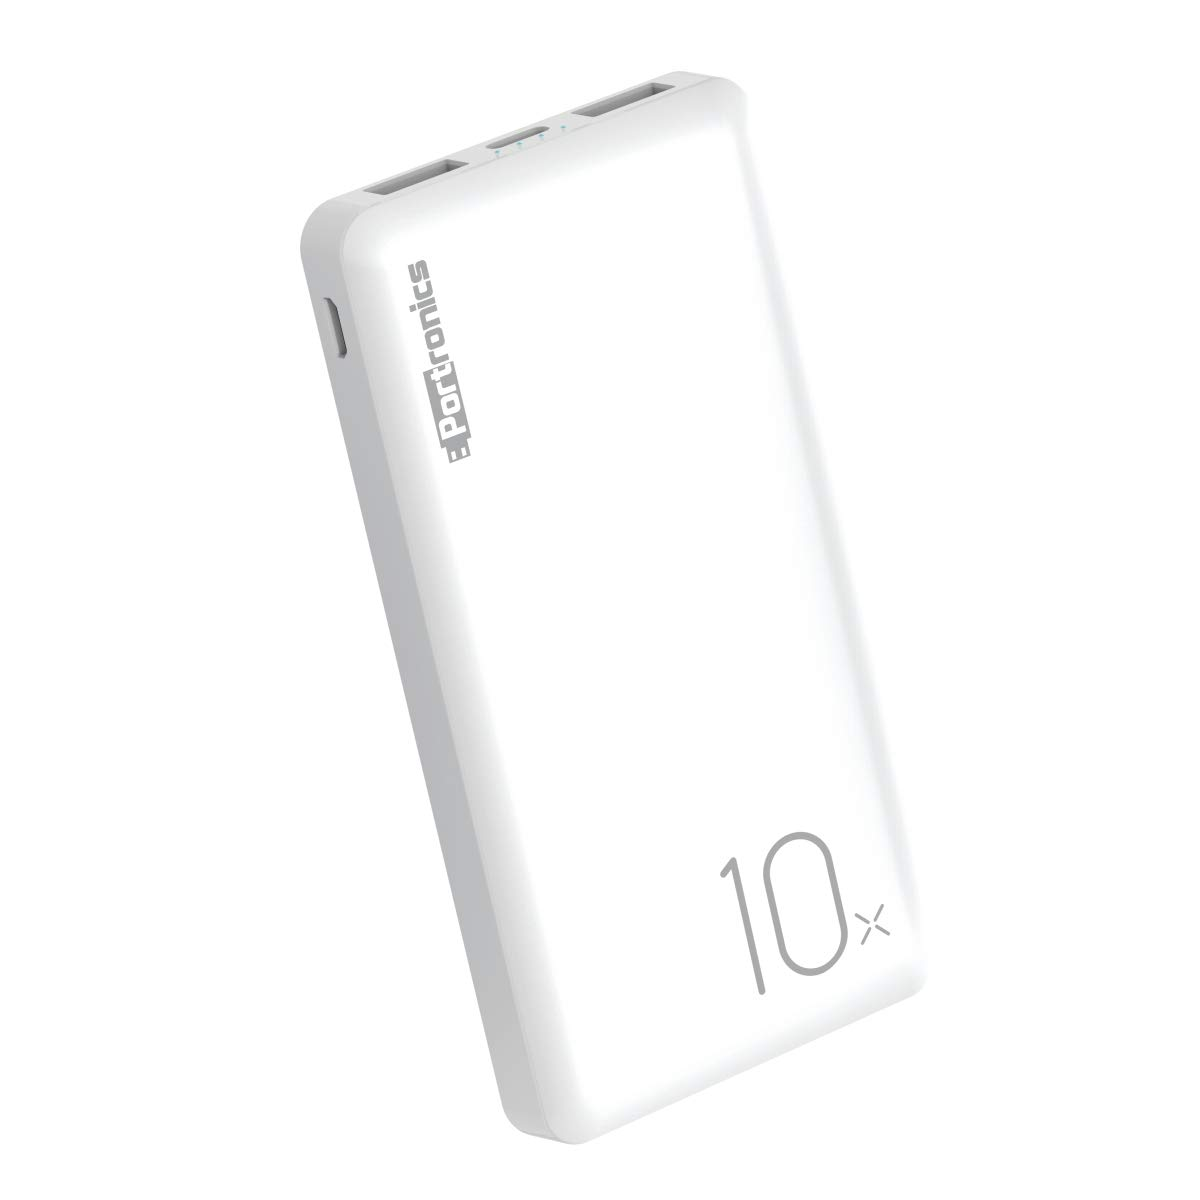 Portronics Power Wallet 10X 10000mAh POR-1049 Li-Polymer Battery Power Bank with LED Indicator, 2.0A Dual Input (Type C + Micro USB) and Dual USB Output (2.1A + 1.0A) for All Android and iOS Devices (White)